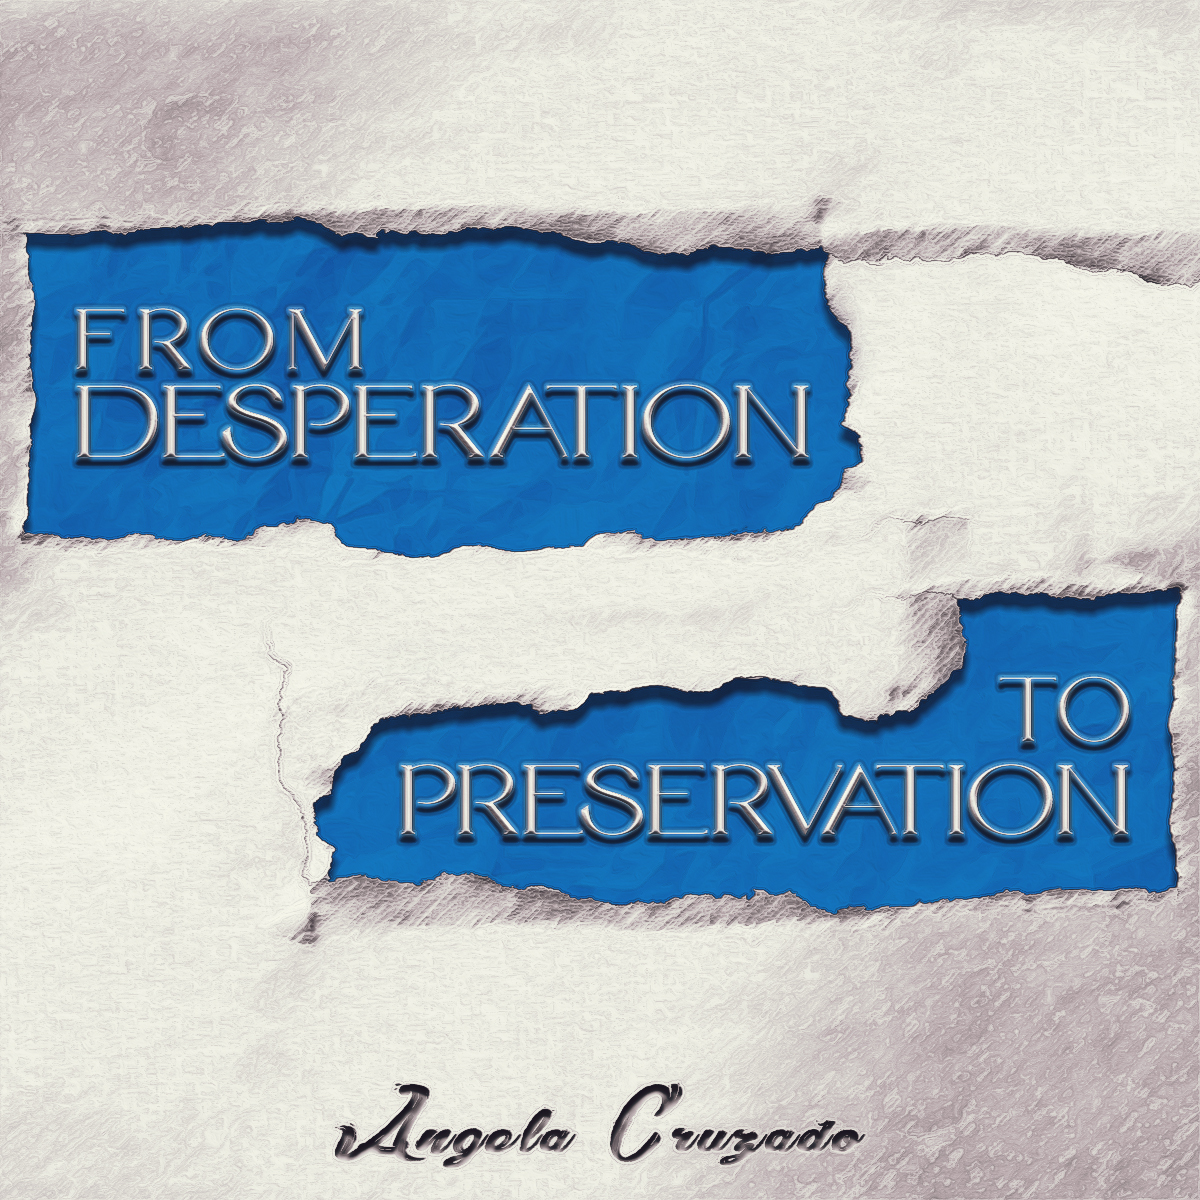 From Desperation To Preservation